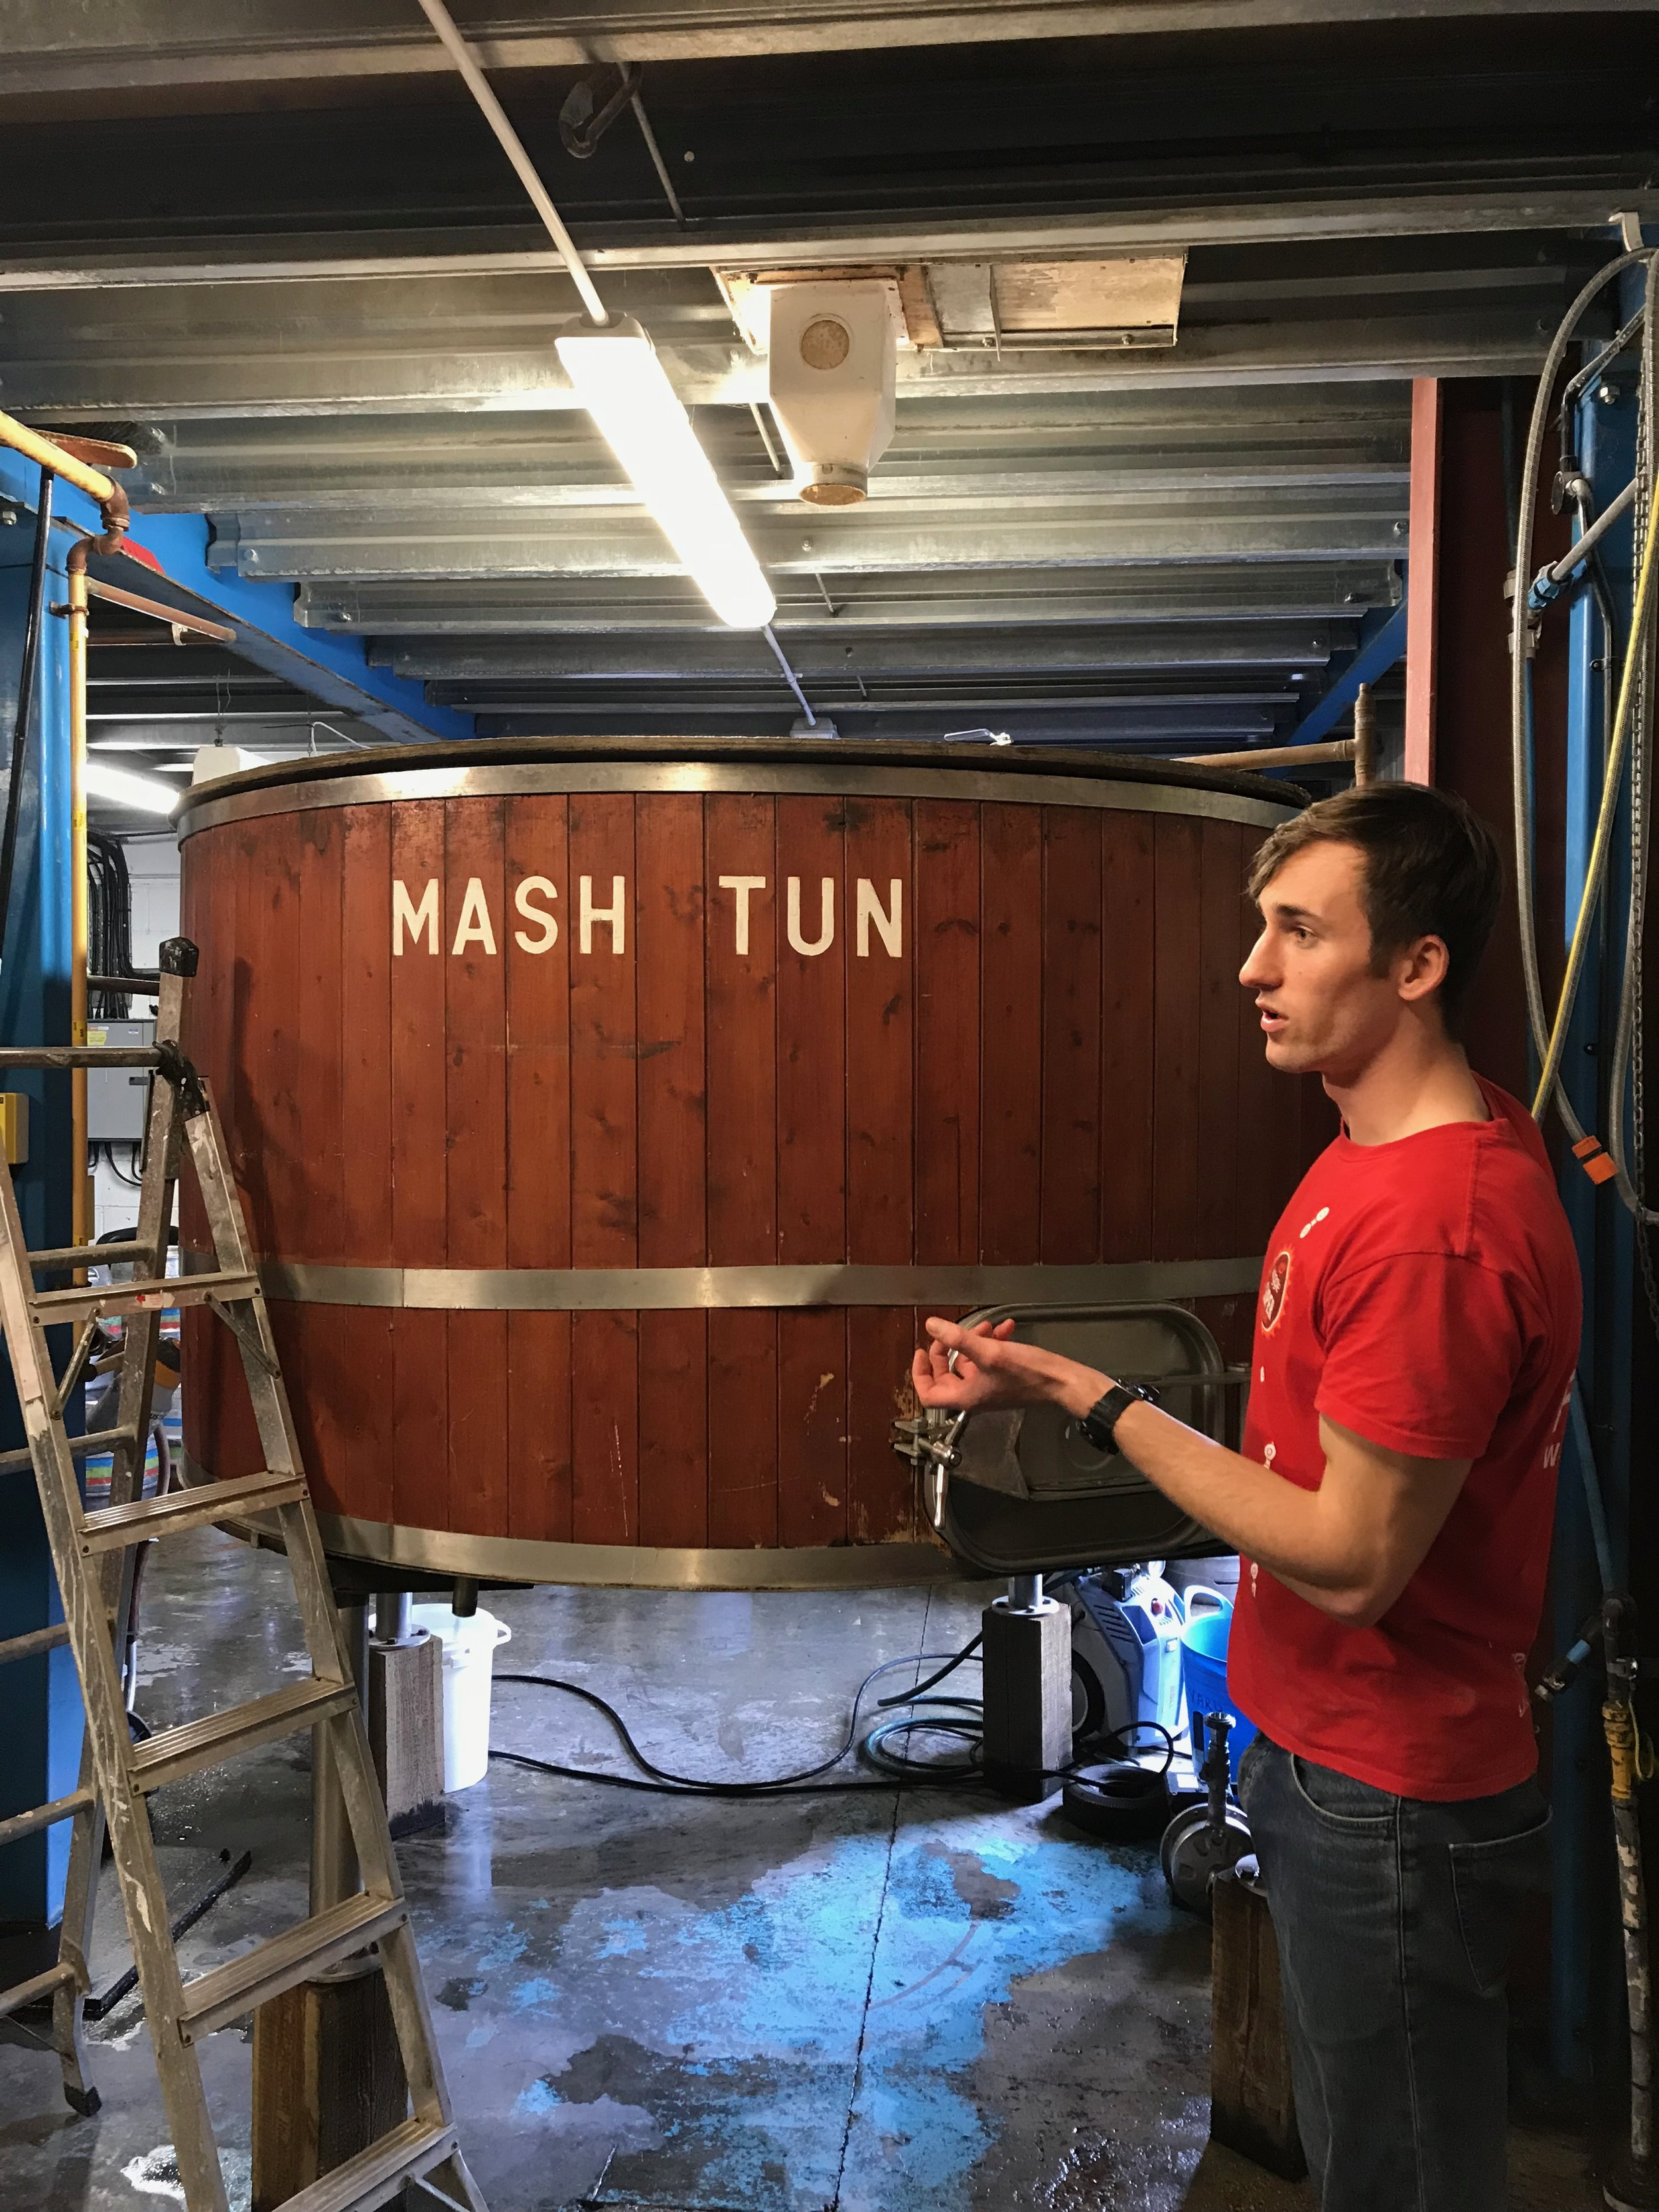 Dom from Itchen Valley Brewery was our able tour guide